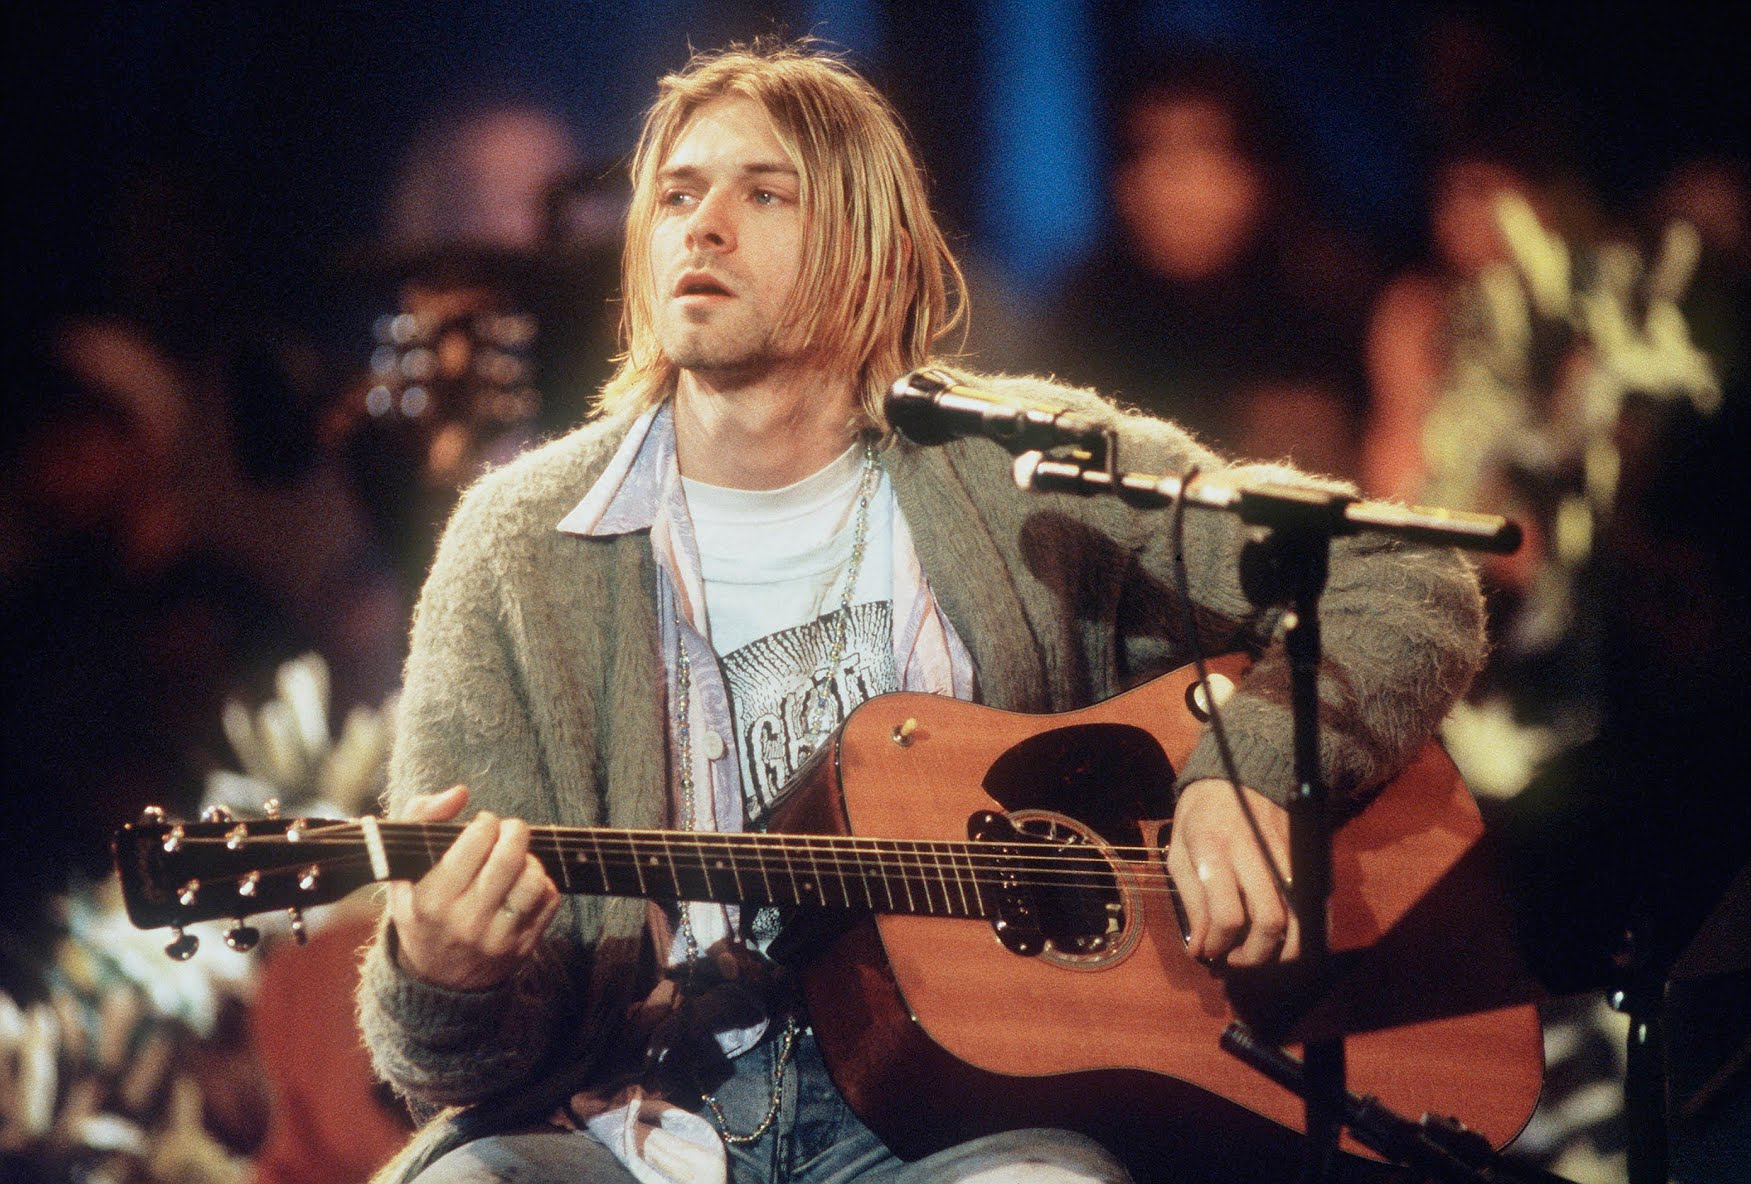 Image may contain: Musical Instrument, Guitar, Leisure Activities, Human, Person, Kurt Cobain, Musician, and Performer